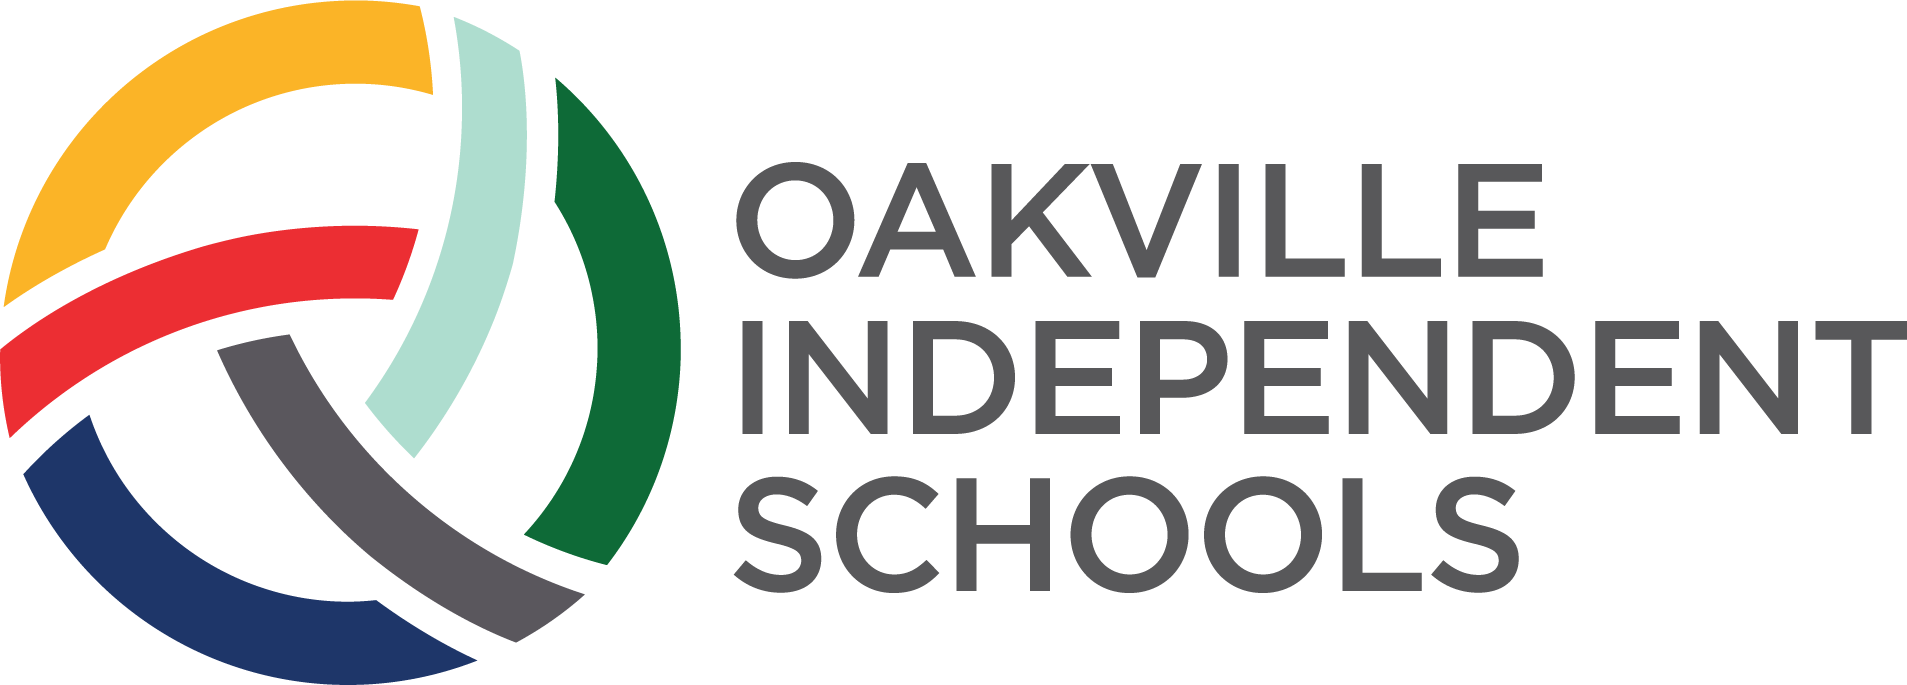 Link to Oakville Independent Schools